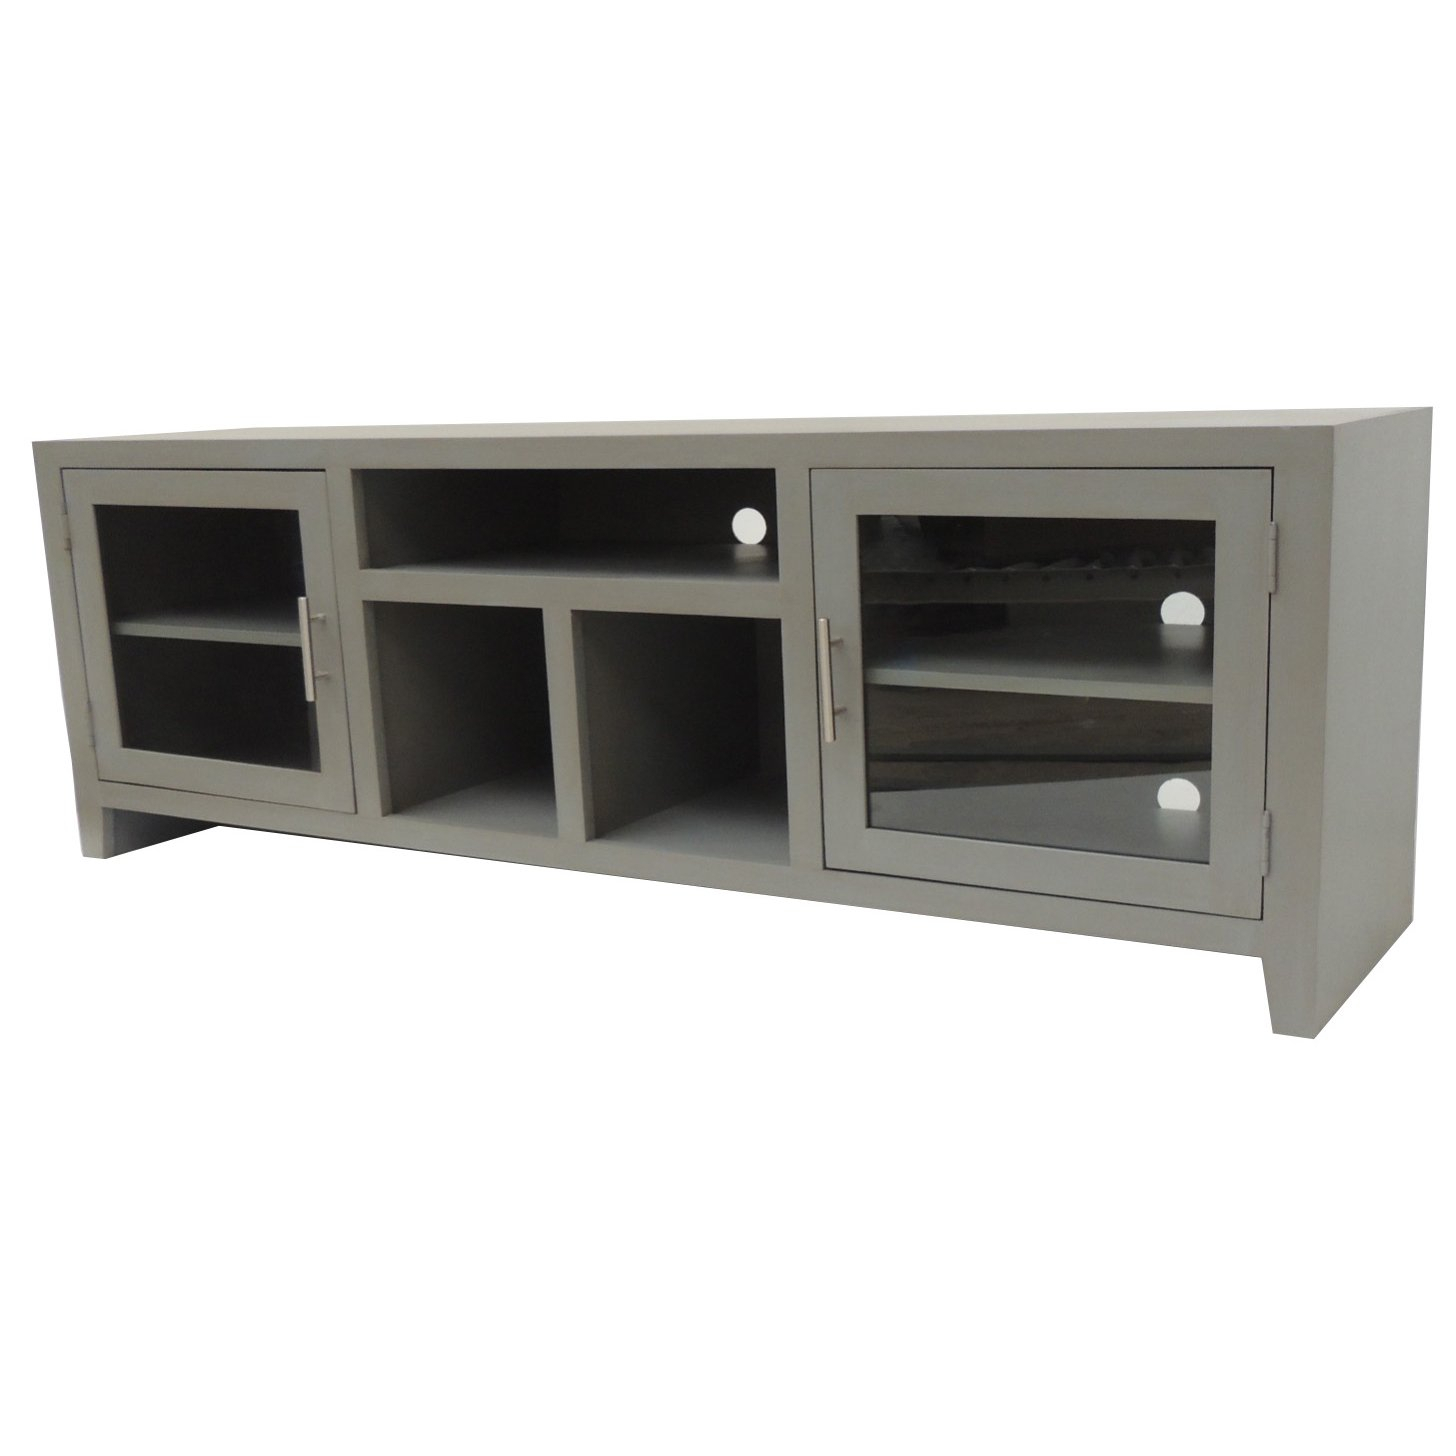 65 Inch Gray Tv Stand | Rc Willey Furniture Store In Draper 62 Inch Tv Stands (Gallery 4 of 30)